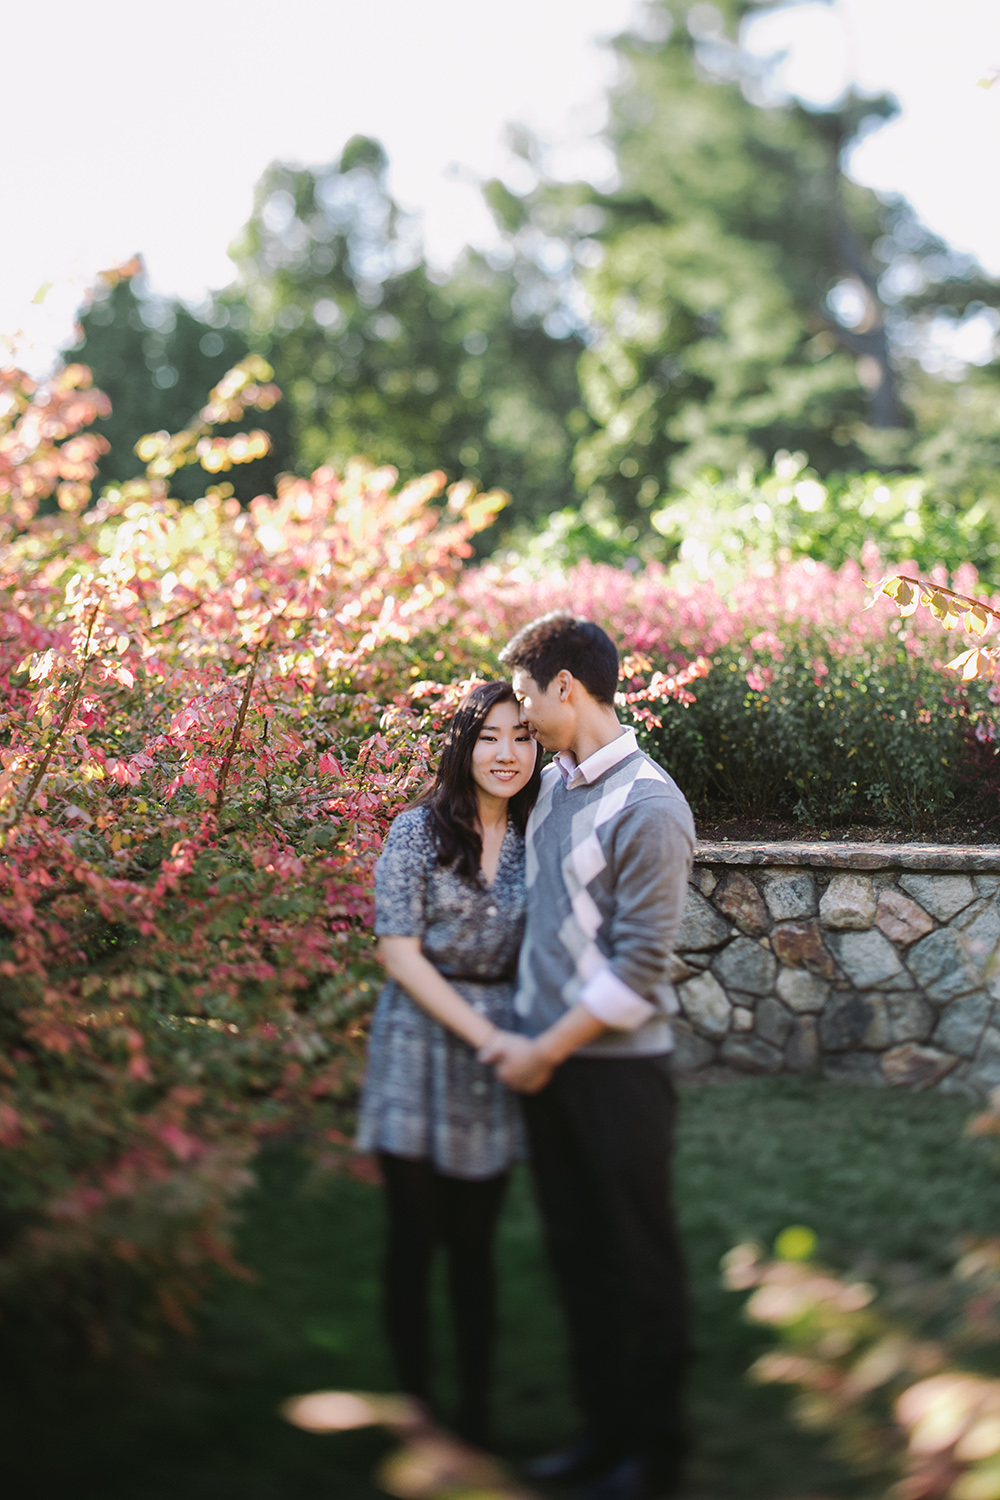 Blog Love Me Do Photography Candy Dress Dusty Pink Sj0015 Sunny And Joes Engagement Shoot Took Place At Longwood Gardens Im Excited To Photograph Their Wedding In 2014